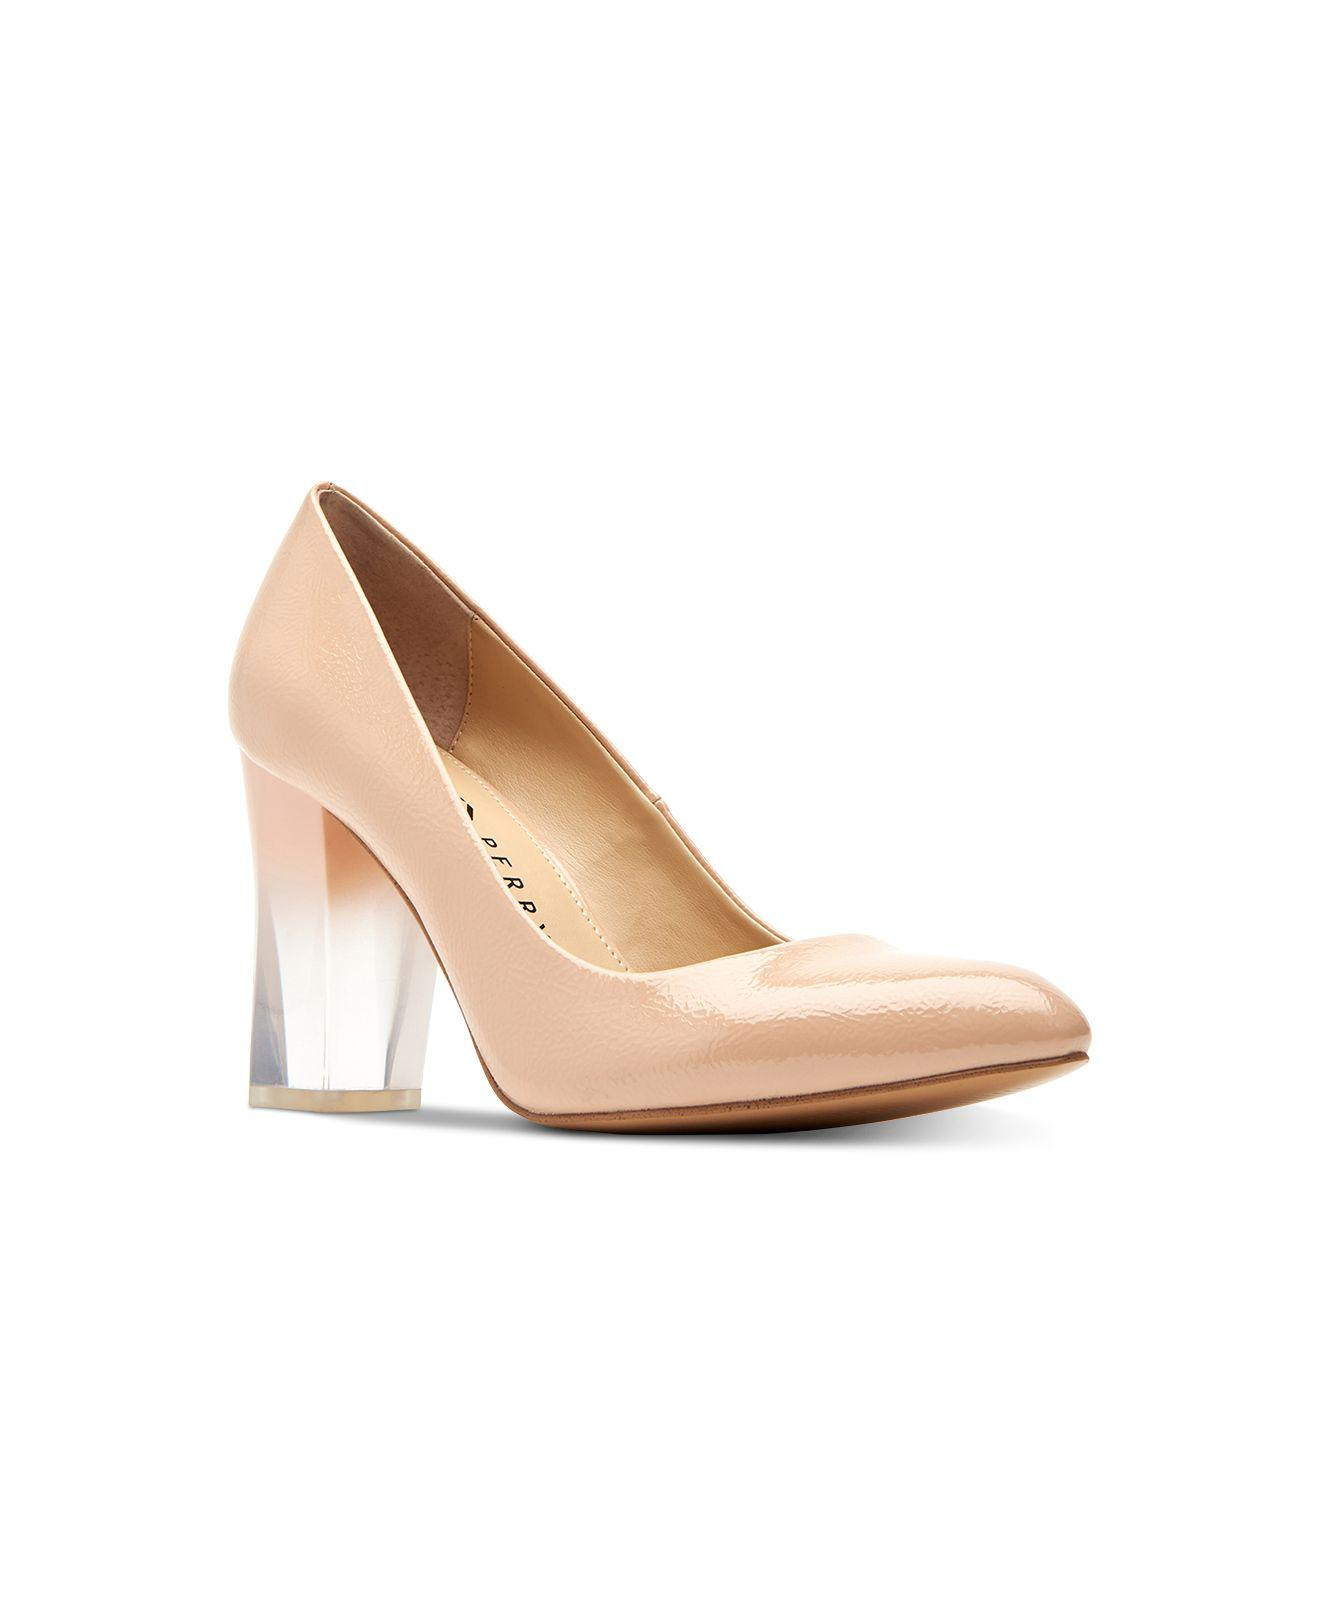 36eae5348b4 Lyst - Katy Perry The A.w. Ombré-lucite Pumps in Natural